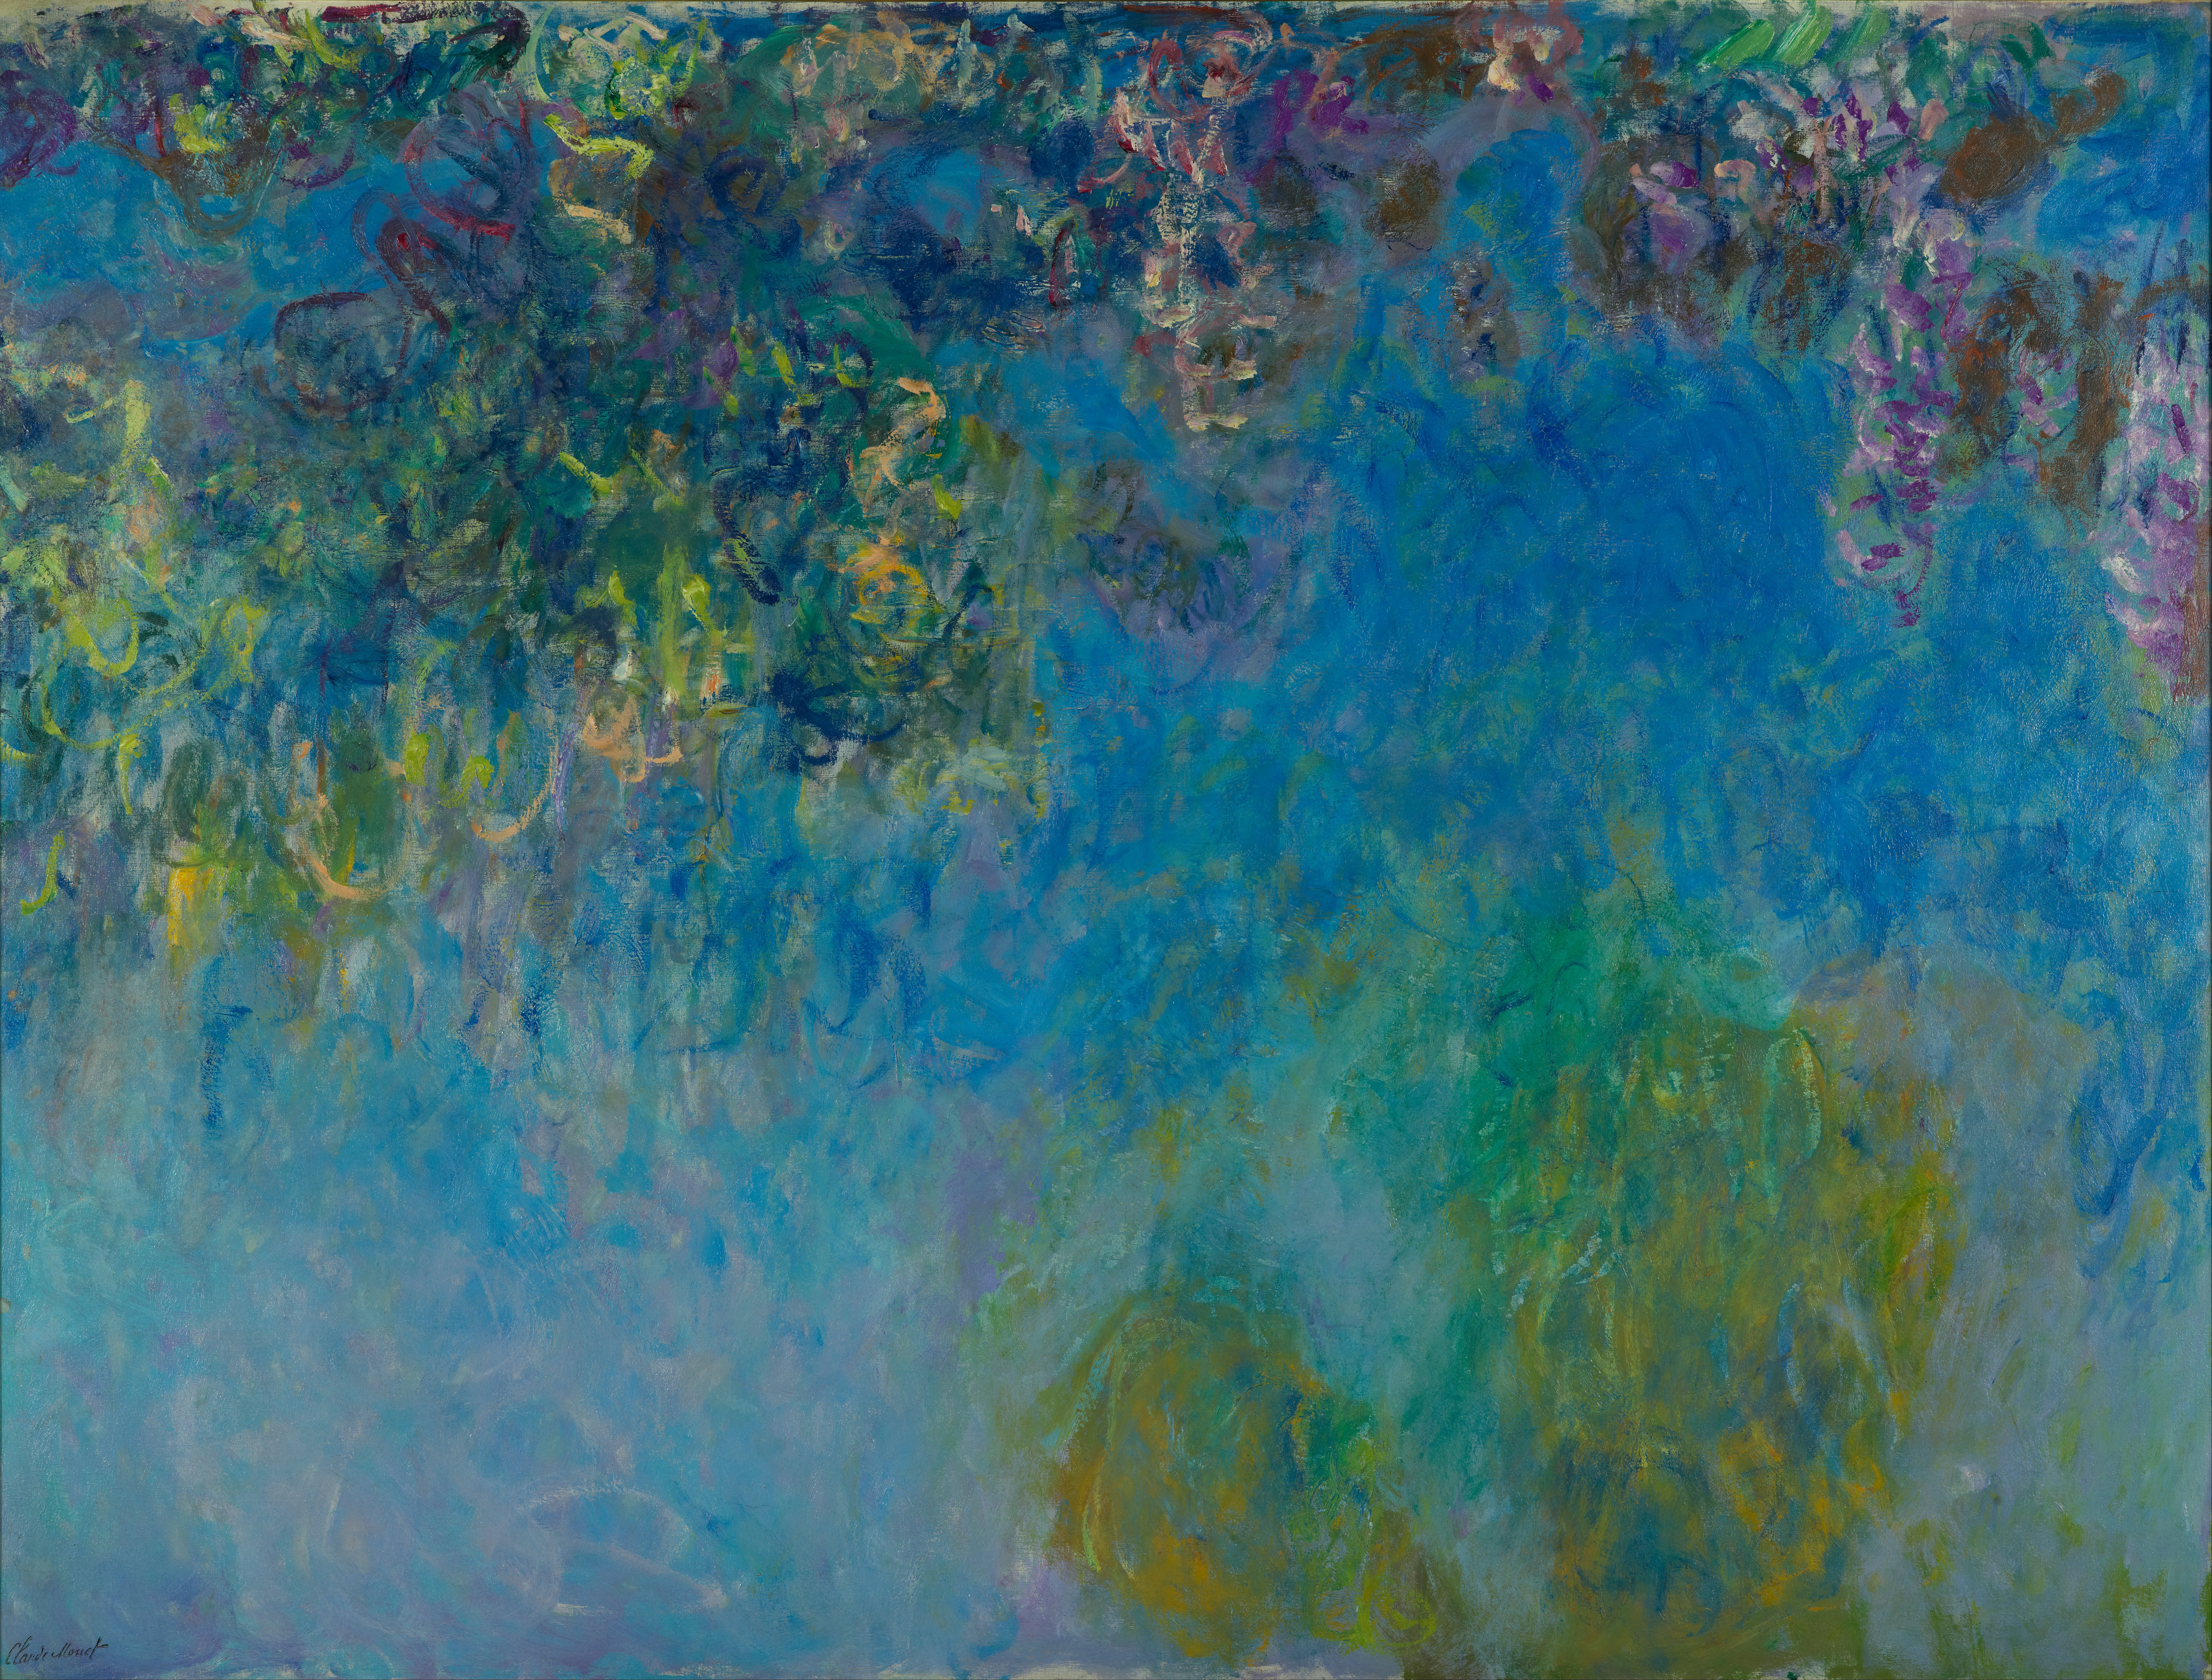 ファイル claude monet wisteria google art project jpg wikipedia